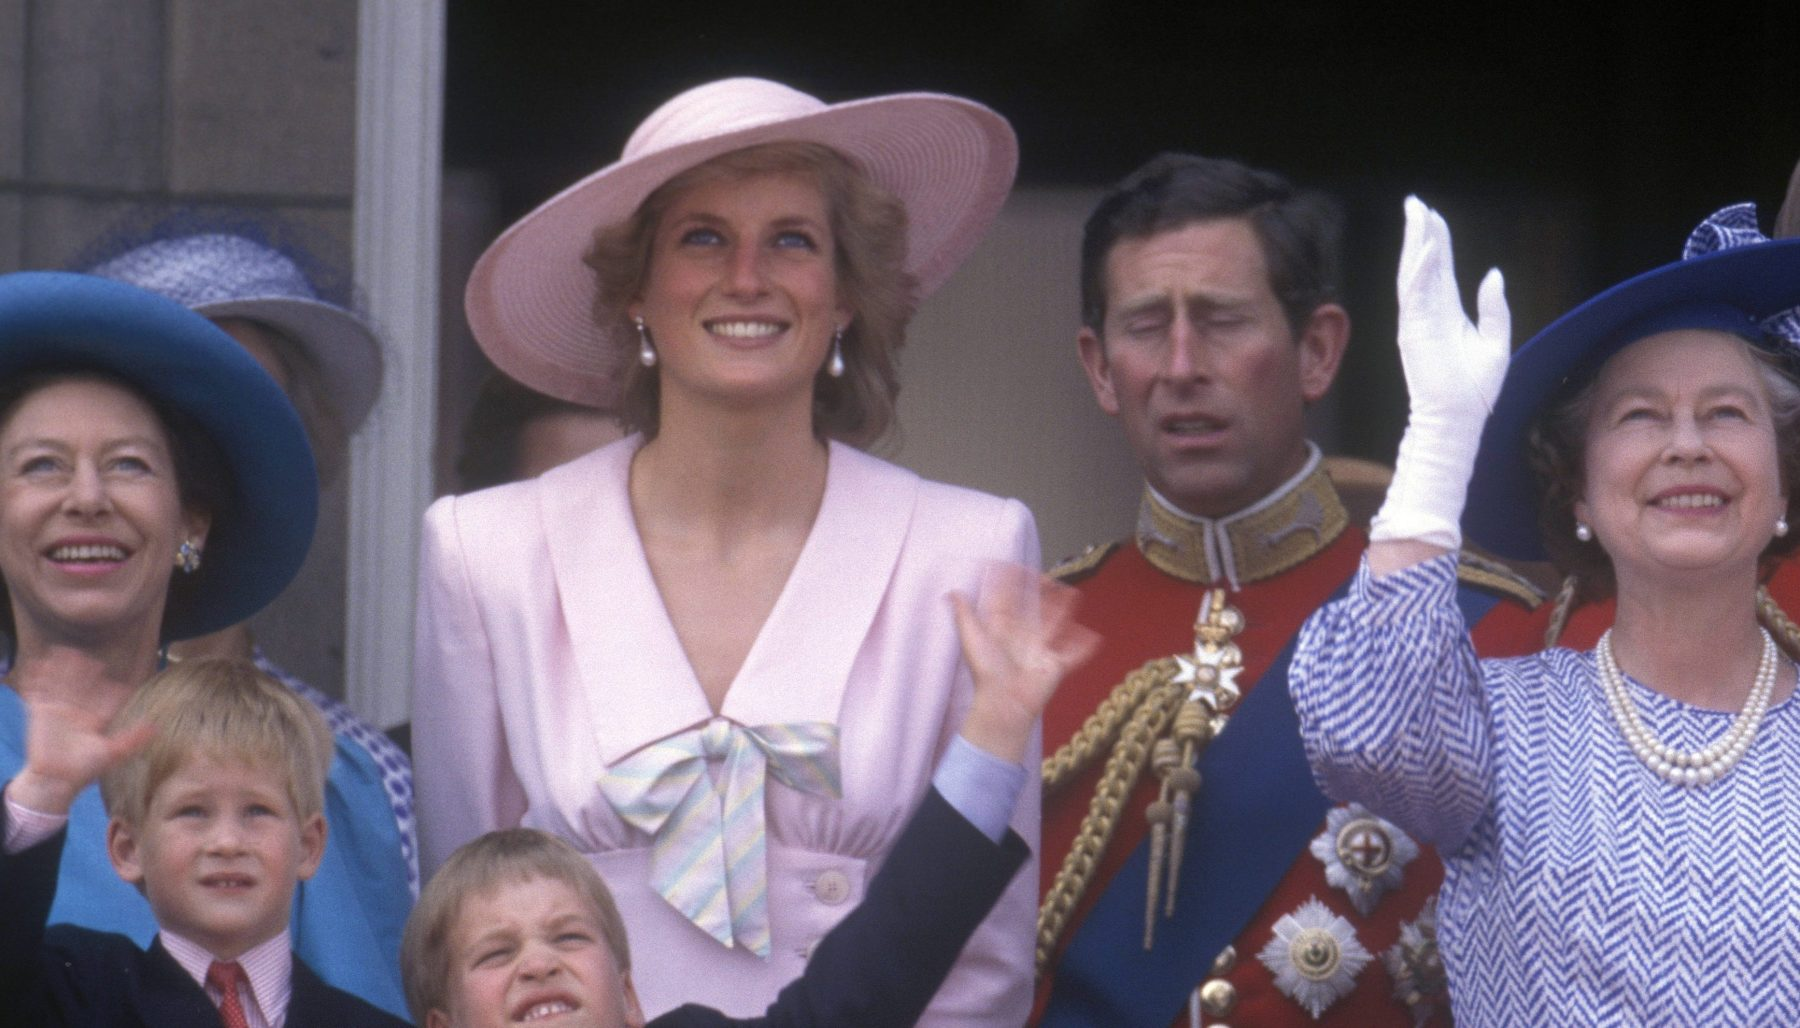 [Original caption] Diana, Princess of Wales, Prince William, Prince Harry, Queen Elizabeth II, Princess Margaret, Prince Charles, Prince of Wales, Trooping the Colour, 17th June 1989. (John Shelley Collection/Avalon/Getty Images)